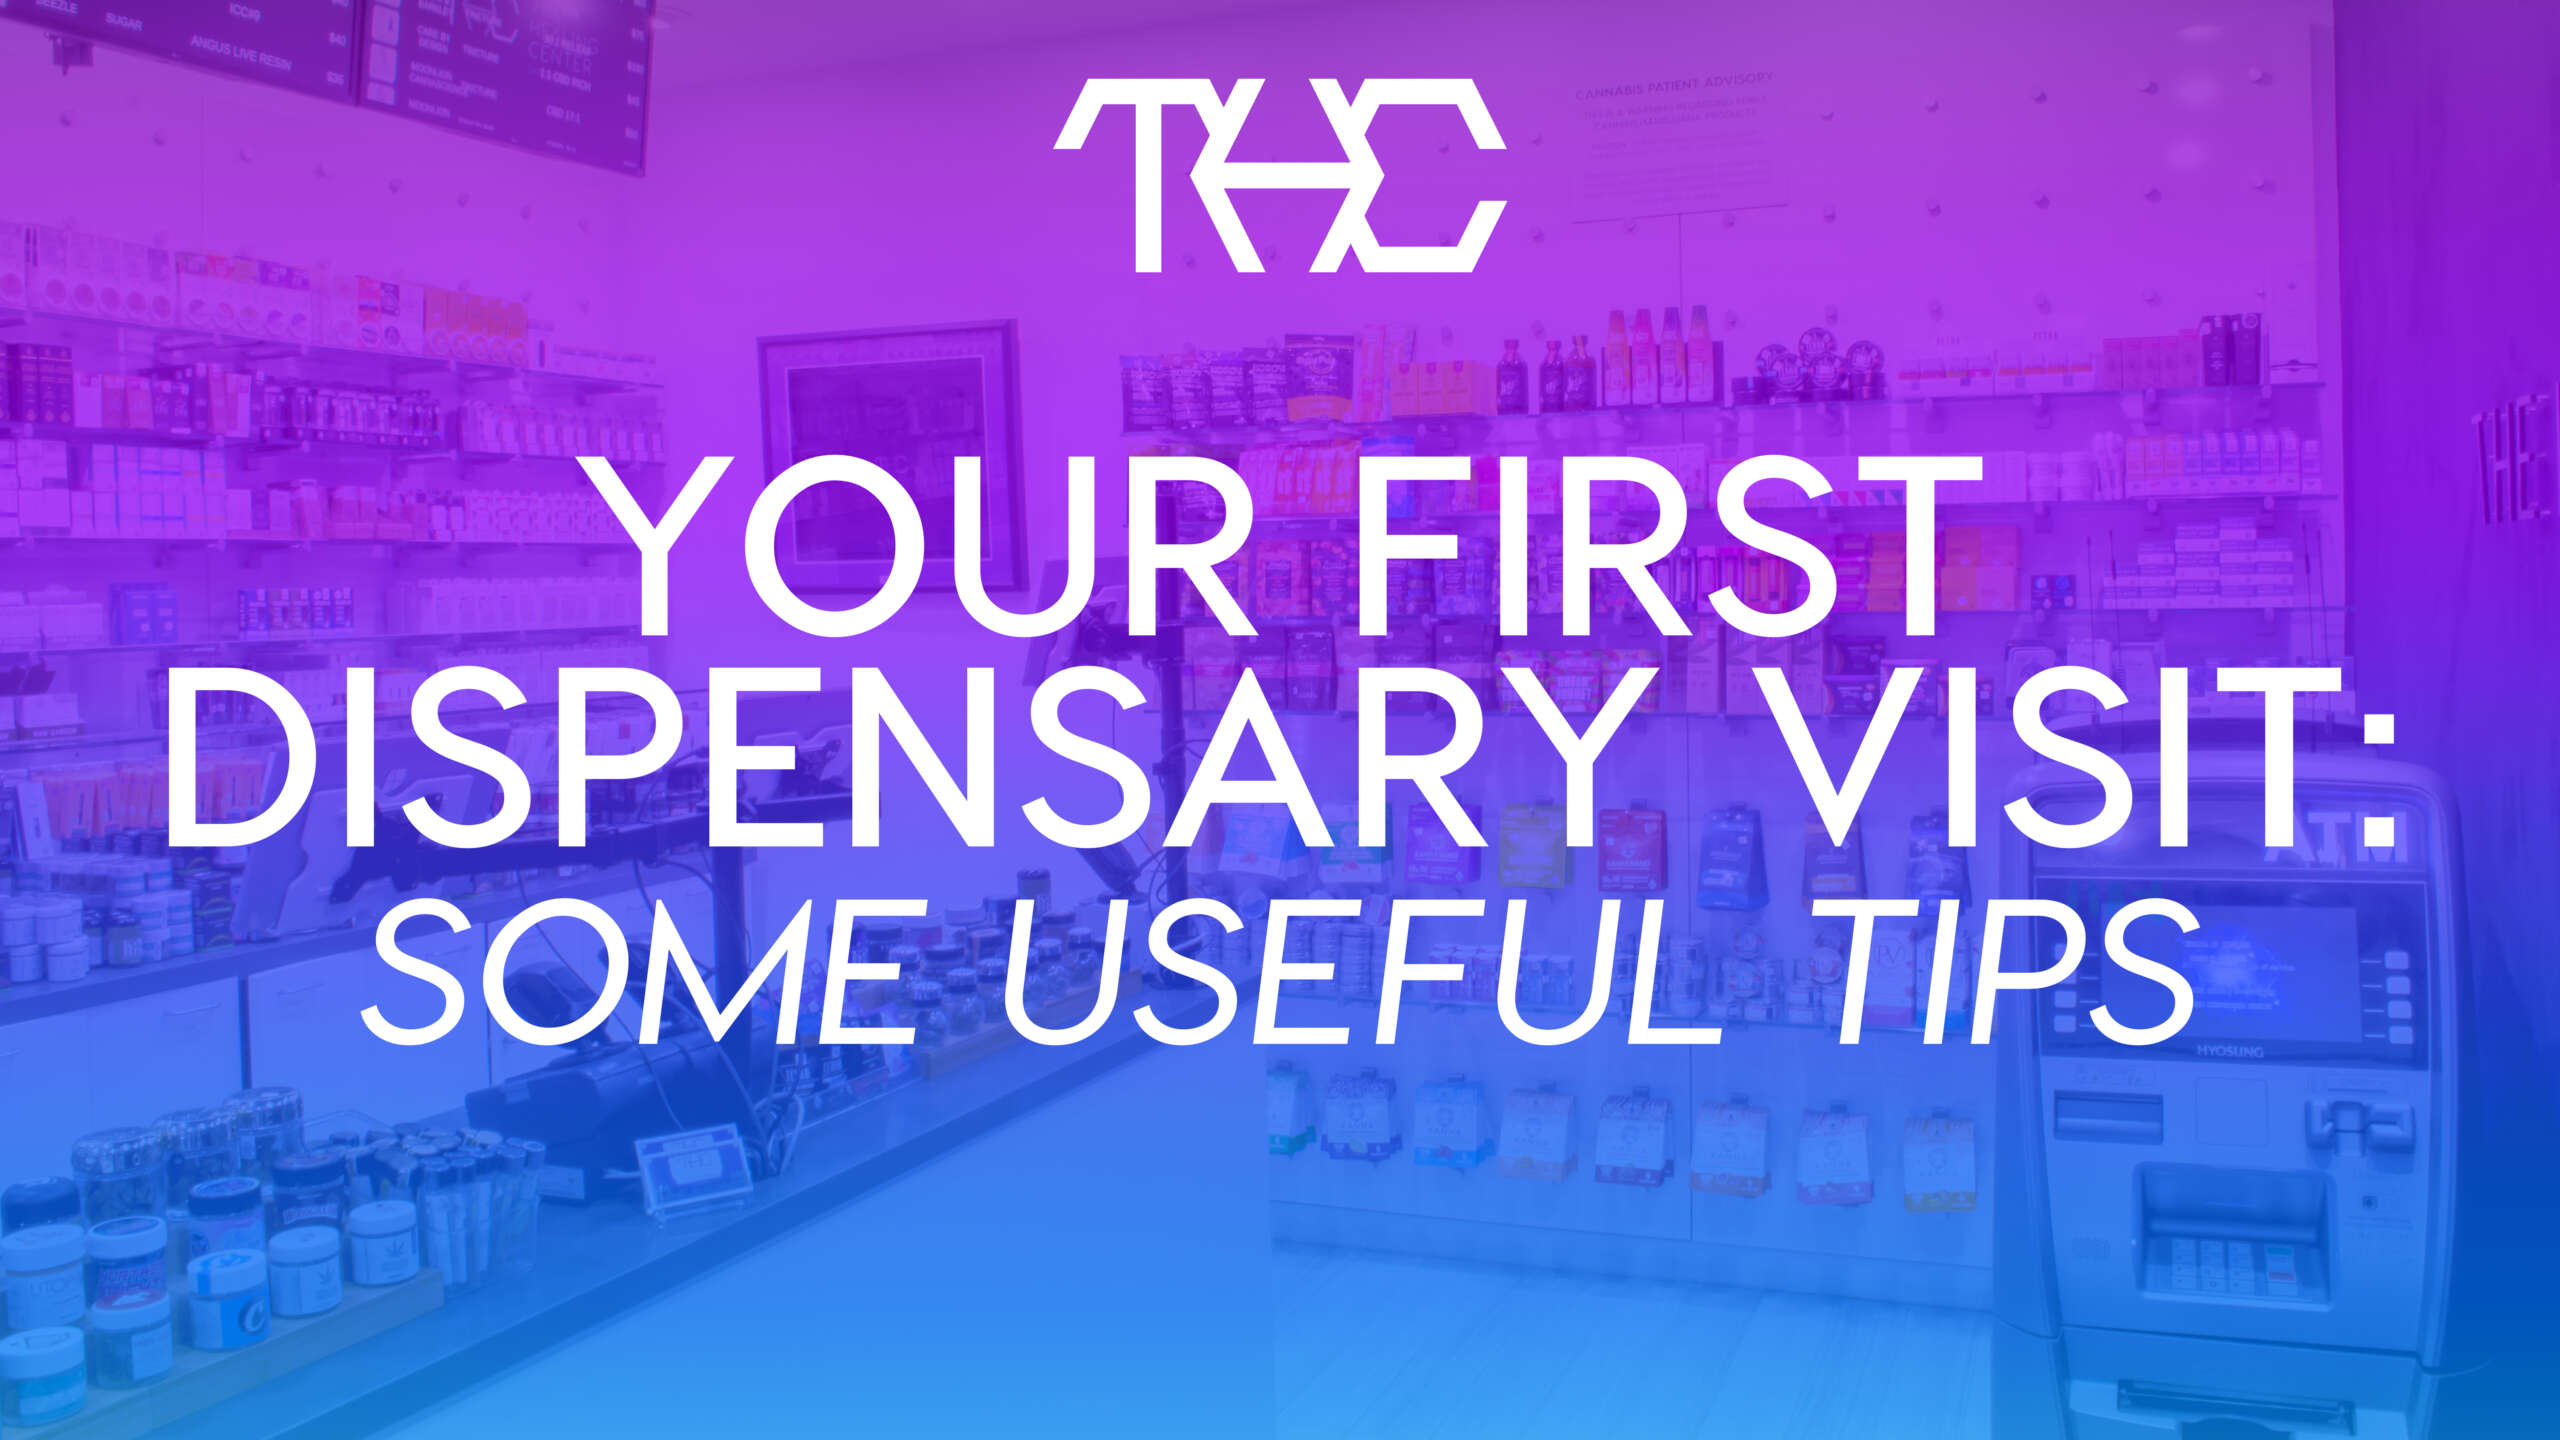 Your First Dispensary Visit: Some Useful Tips